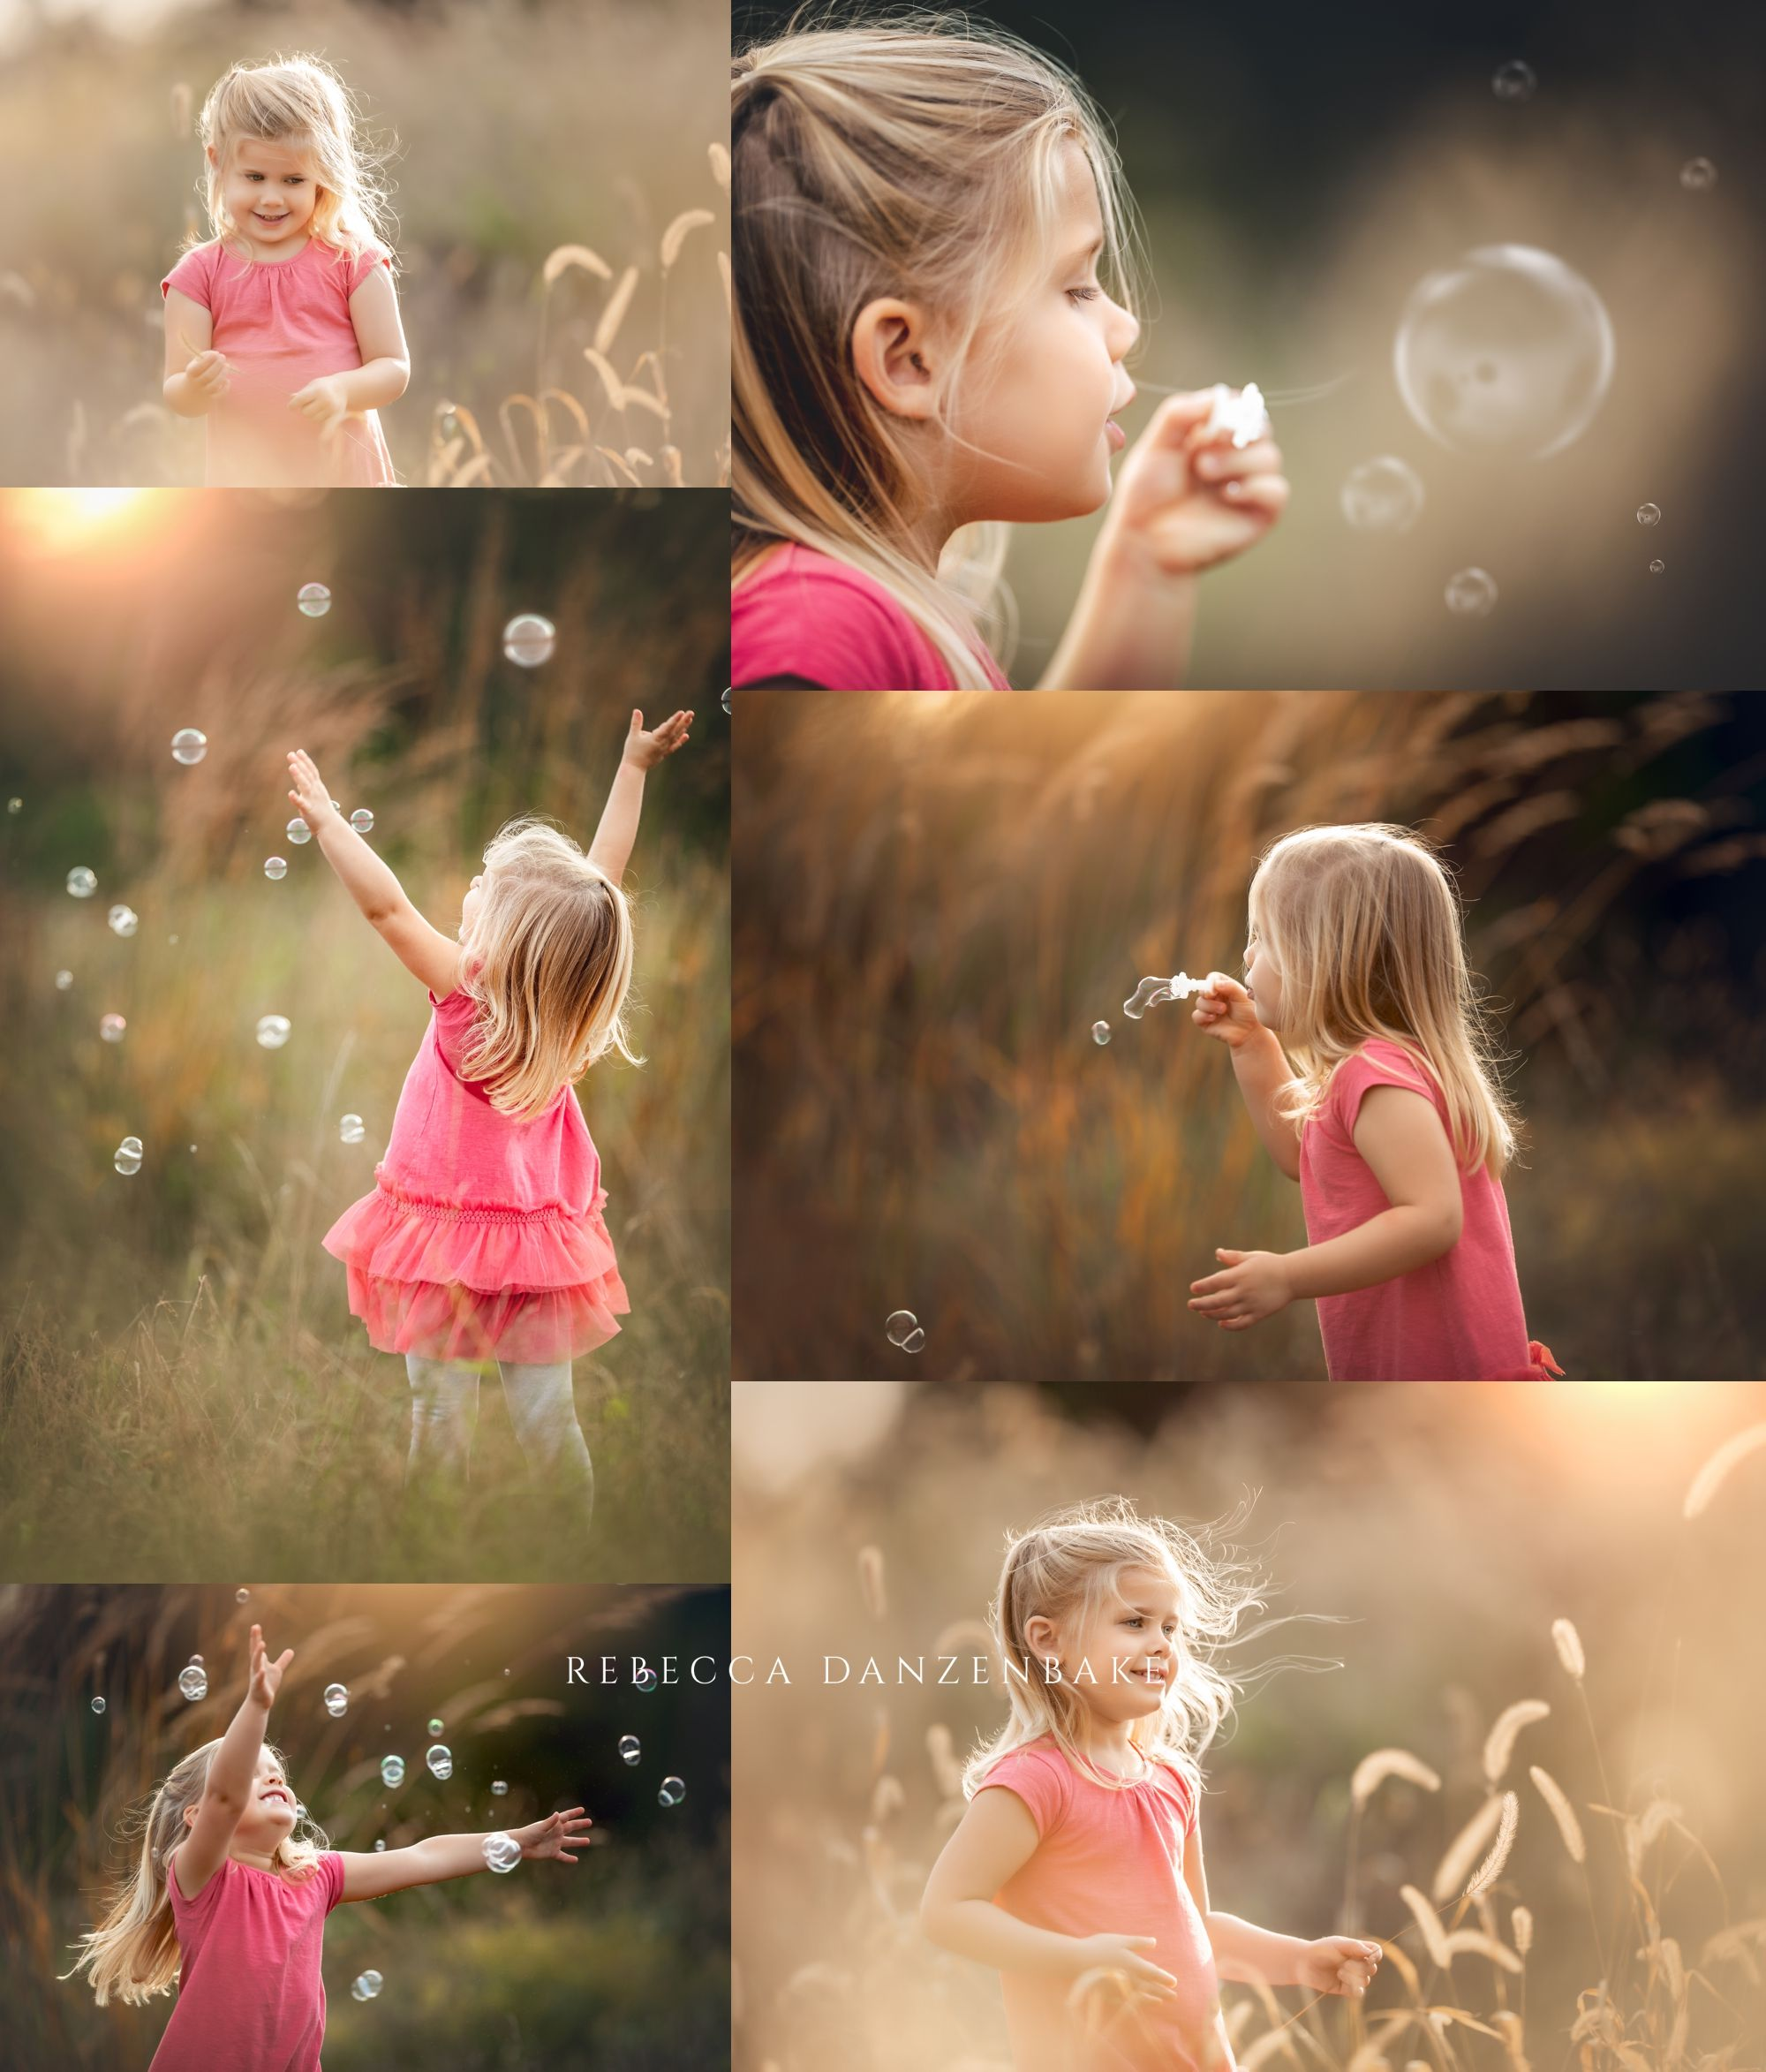 Family photos with bubbles in Northern Virginia | Little girl photography,  Photographing kids, Kids portraits